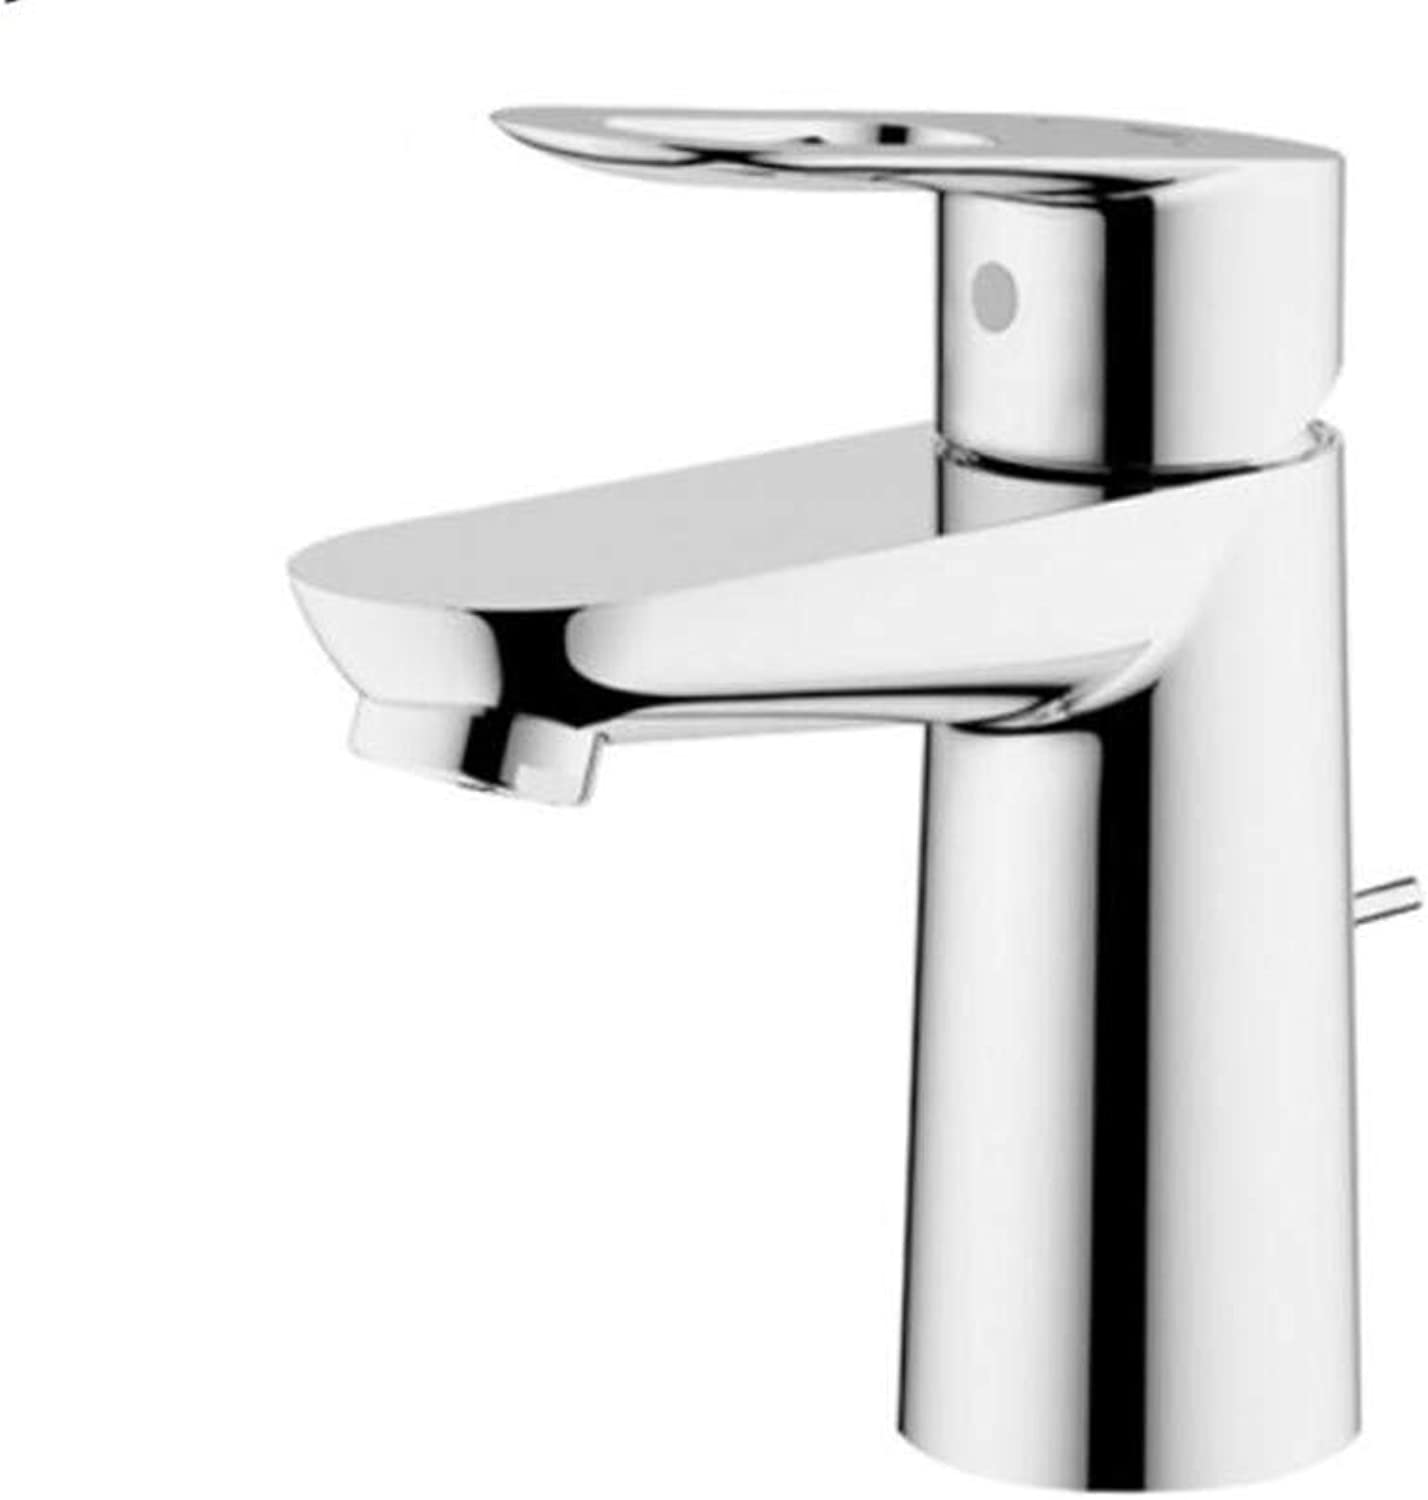 Wasserhahn Spülarmatur Vorfenster Niederdruckhollow Handle For Single Handle Faucet Of Basin